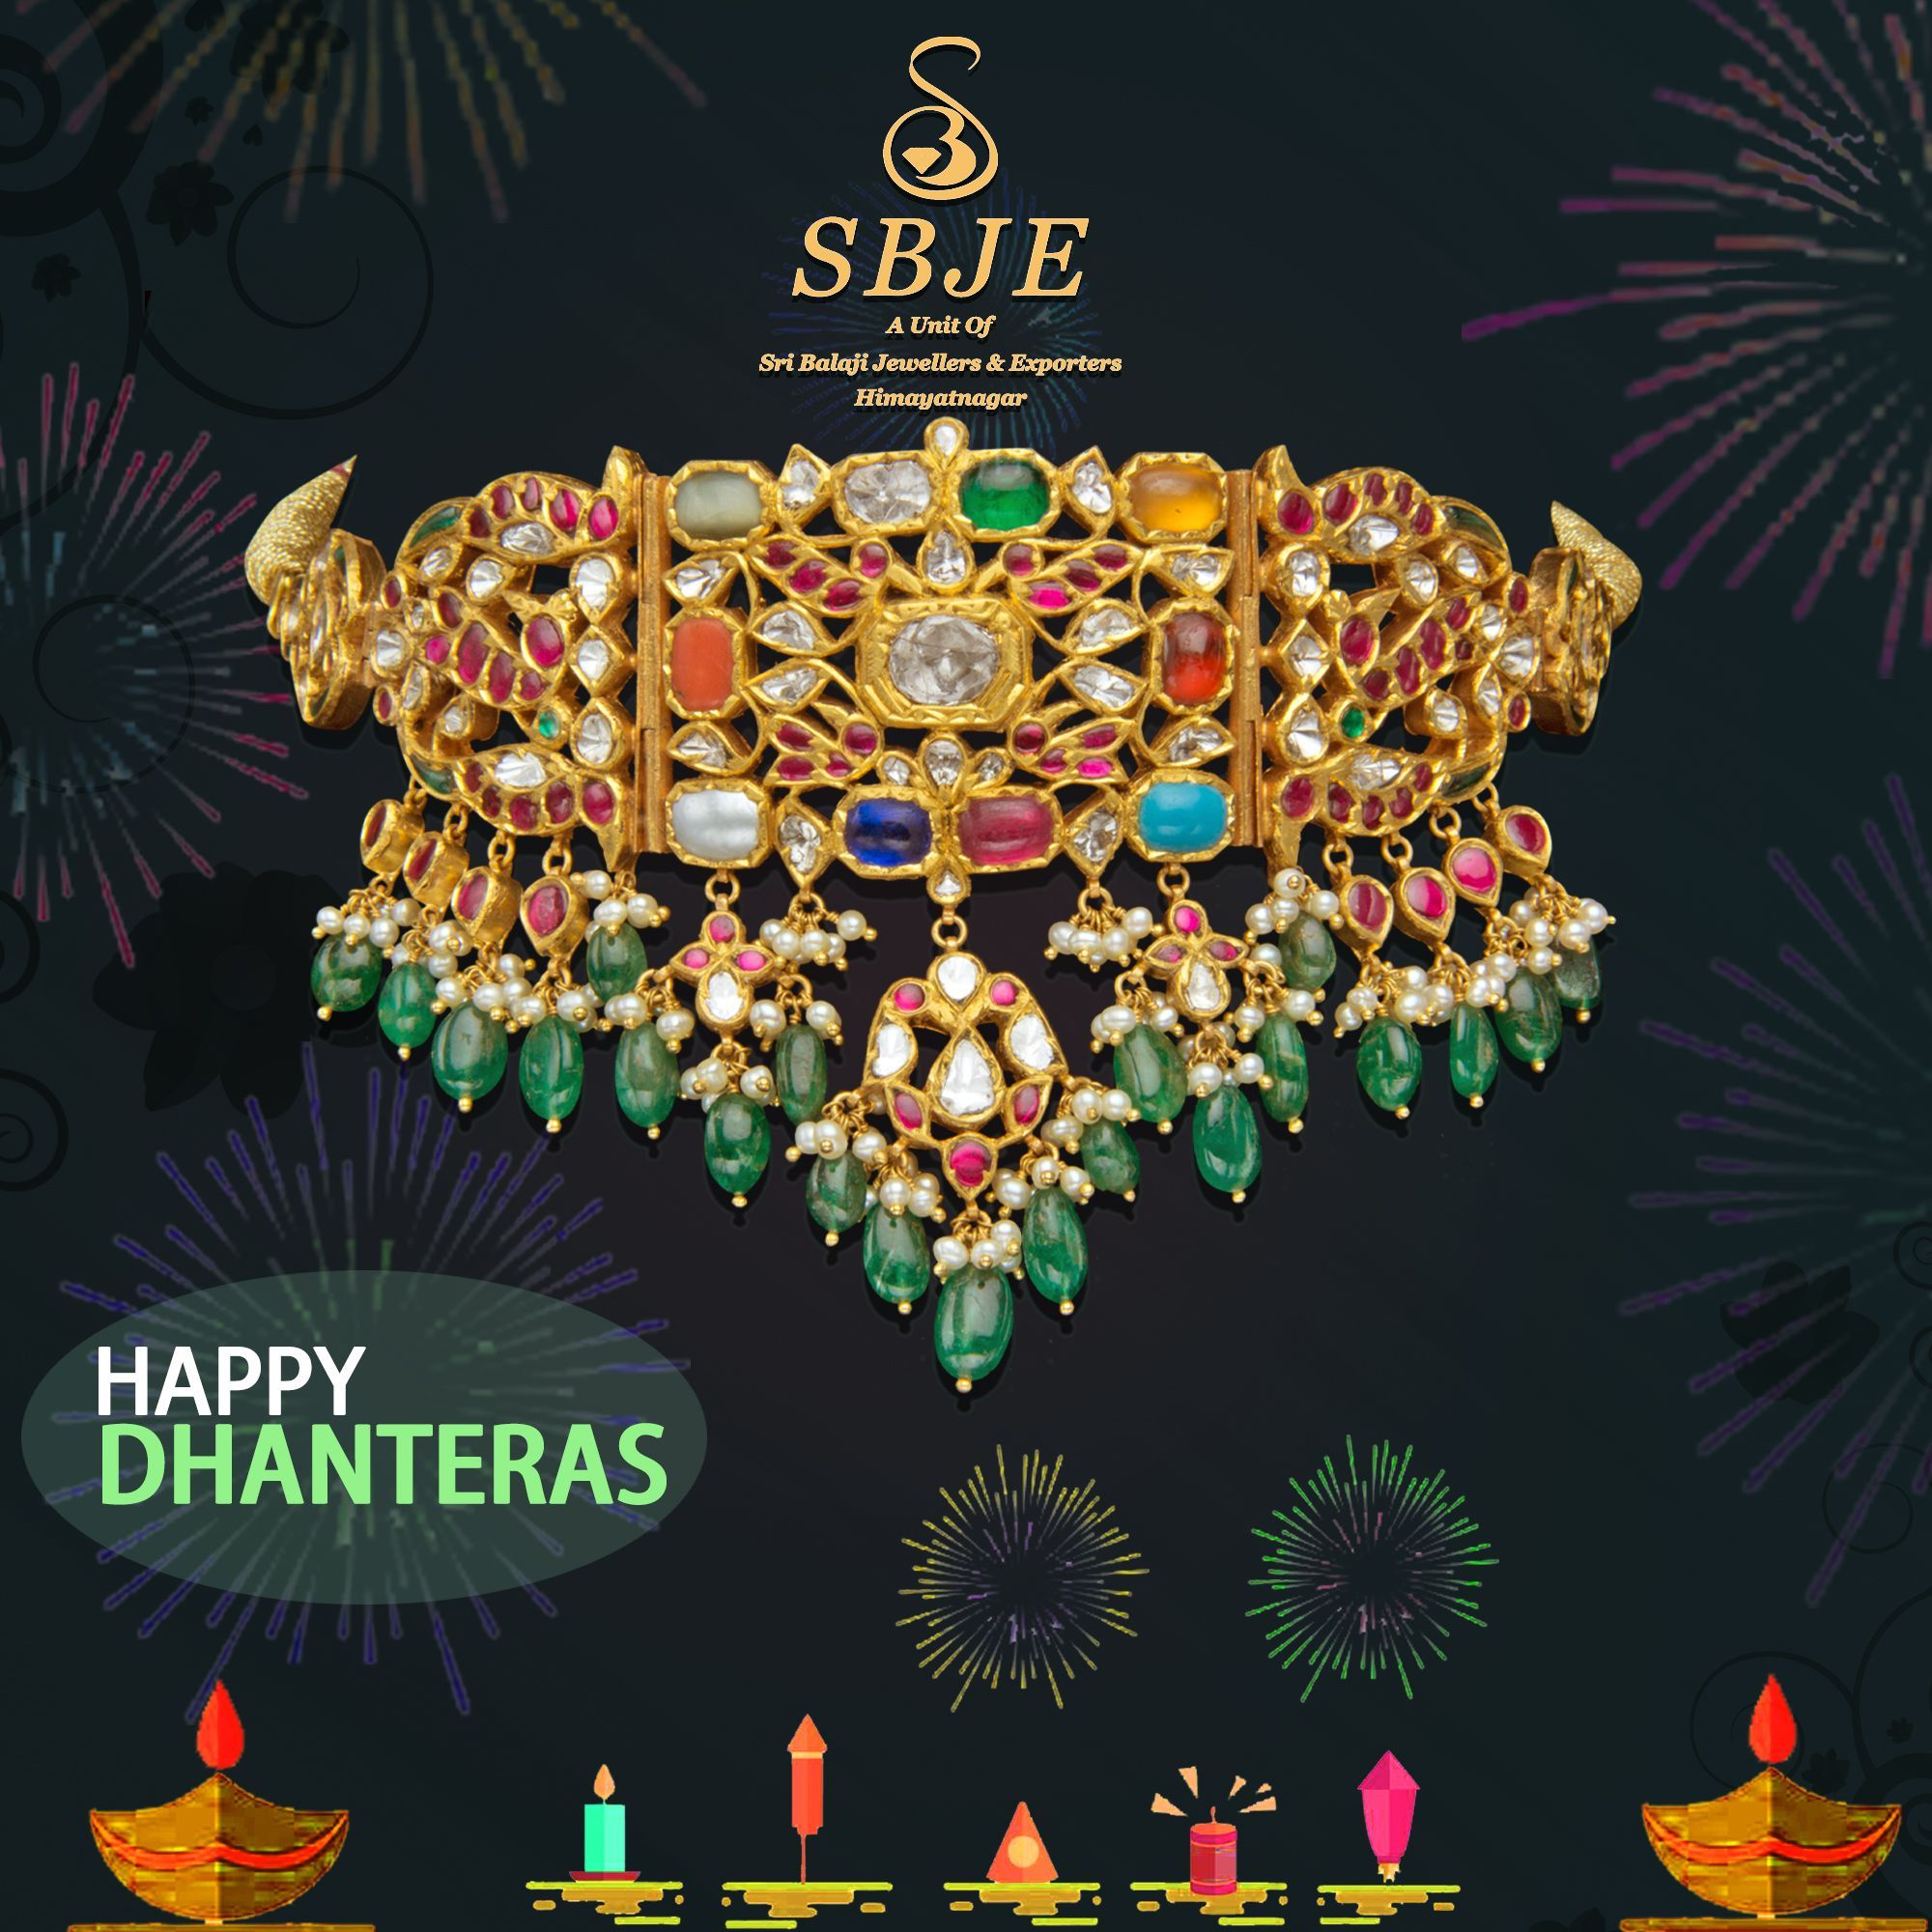 HAPPY DHANTERAS FROM SRI BALAJI JEWELLERS & EXPORTERS FOR DETAILS CONTACT 8340000834 #happydhanteras HAPPY DHANTERAS FROM SRI BALAJI JEWELLERS & EXPORTERS FOR DETAILS CONTACT 8340000834 #SriBalajijewellers&exporter #sbje #diamond #southIndianjewellery #weddingjewellery #bridesofhyderabad #bridaljewellery #southindiabridalfashion #Bridalwear #himayatnagar #EXHIBITION #southindianbride #weddingjewelry  #dhanteras #happydiwali #happydhanteras